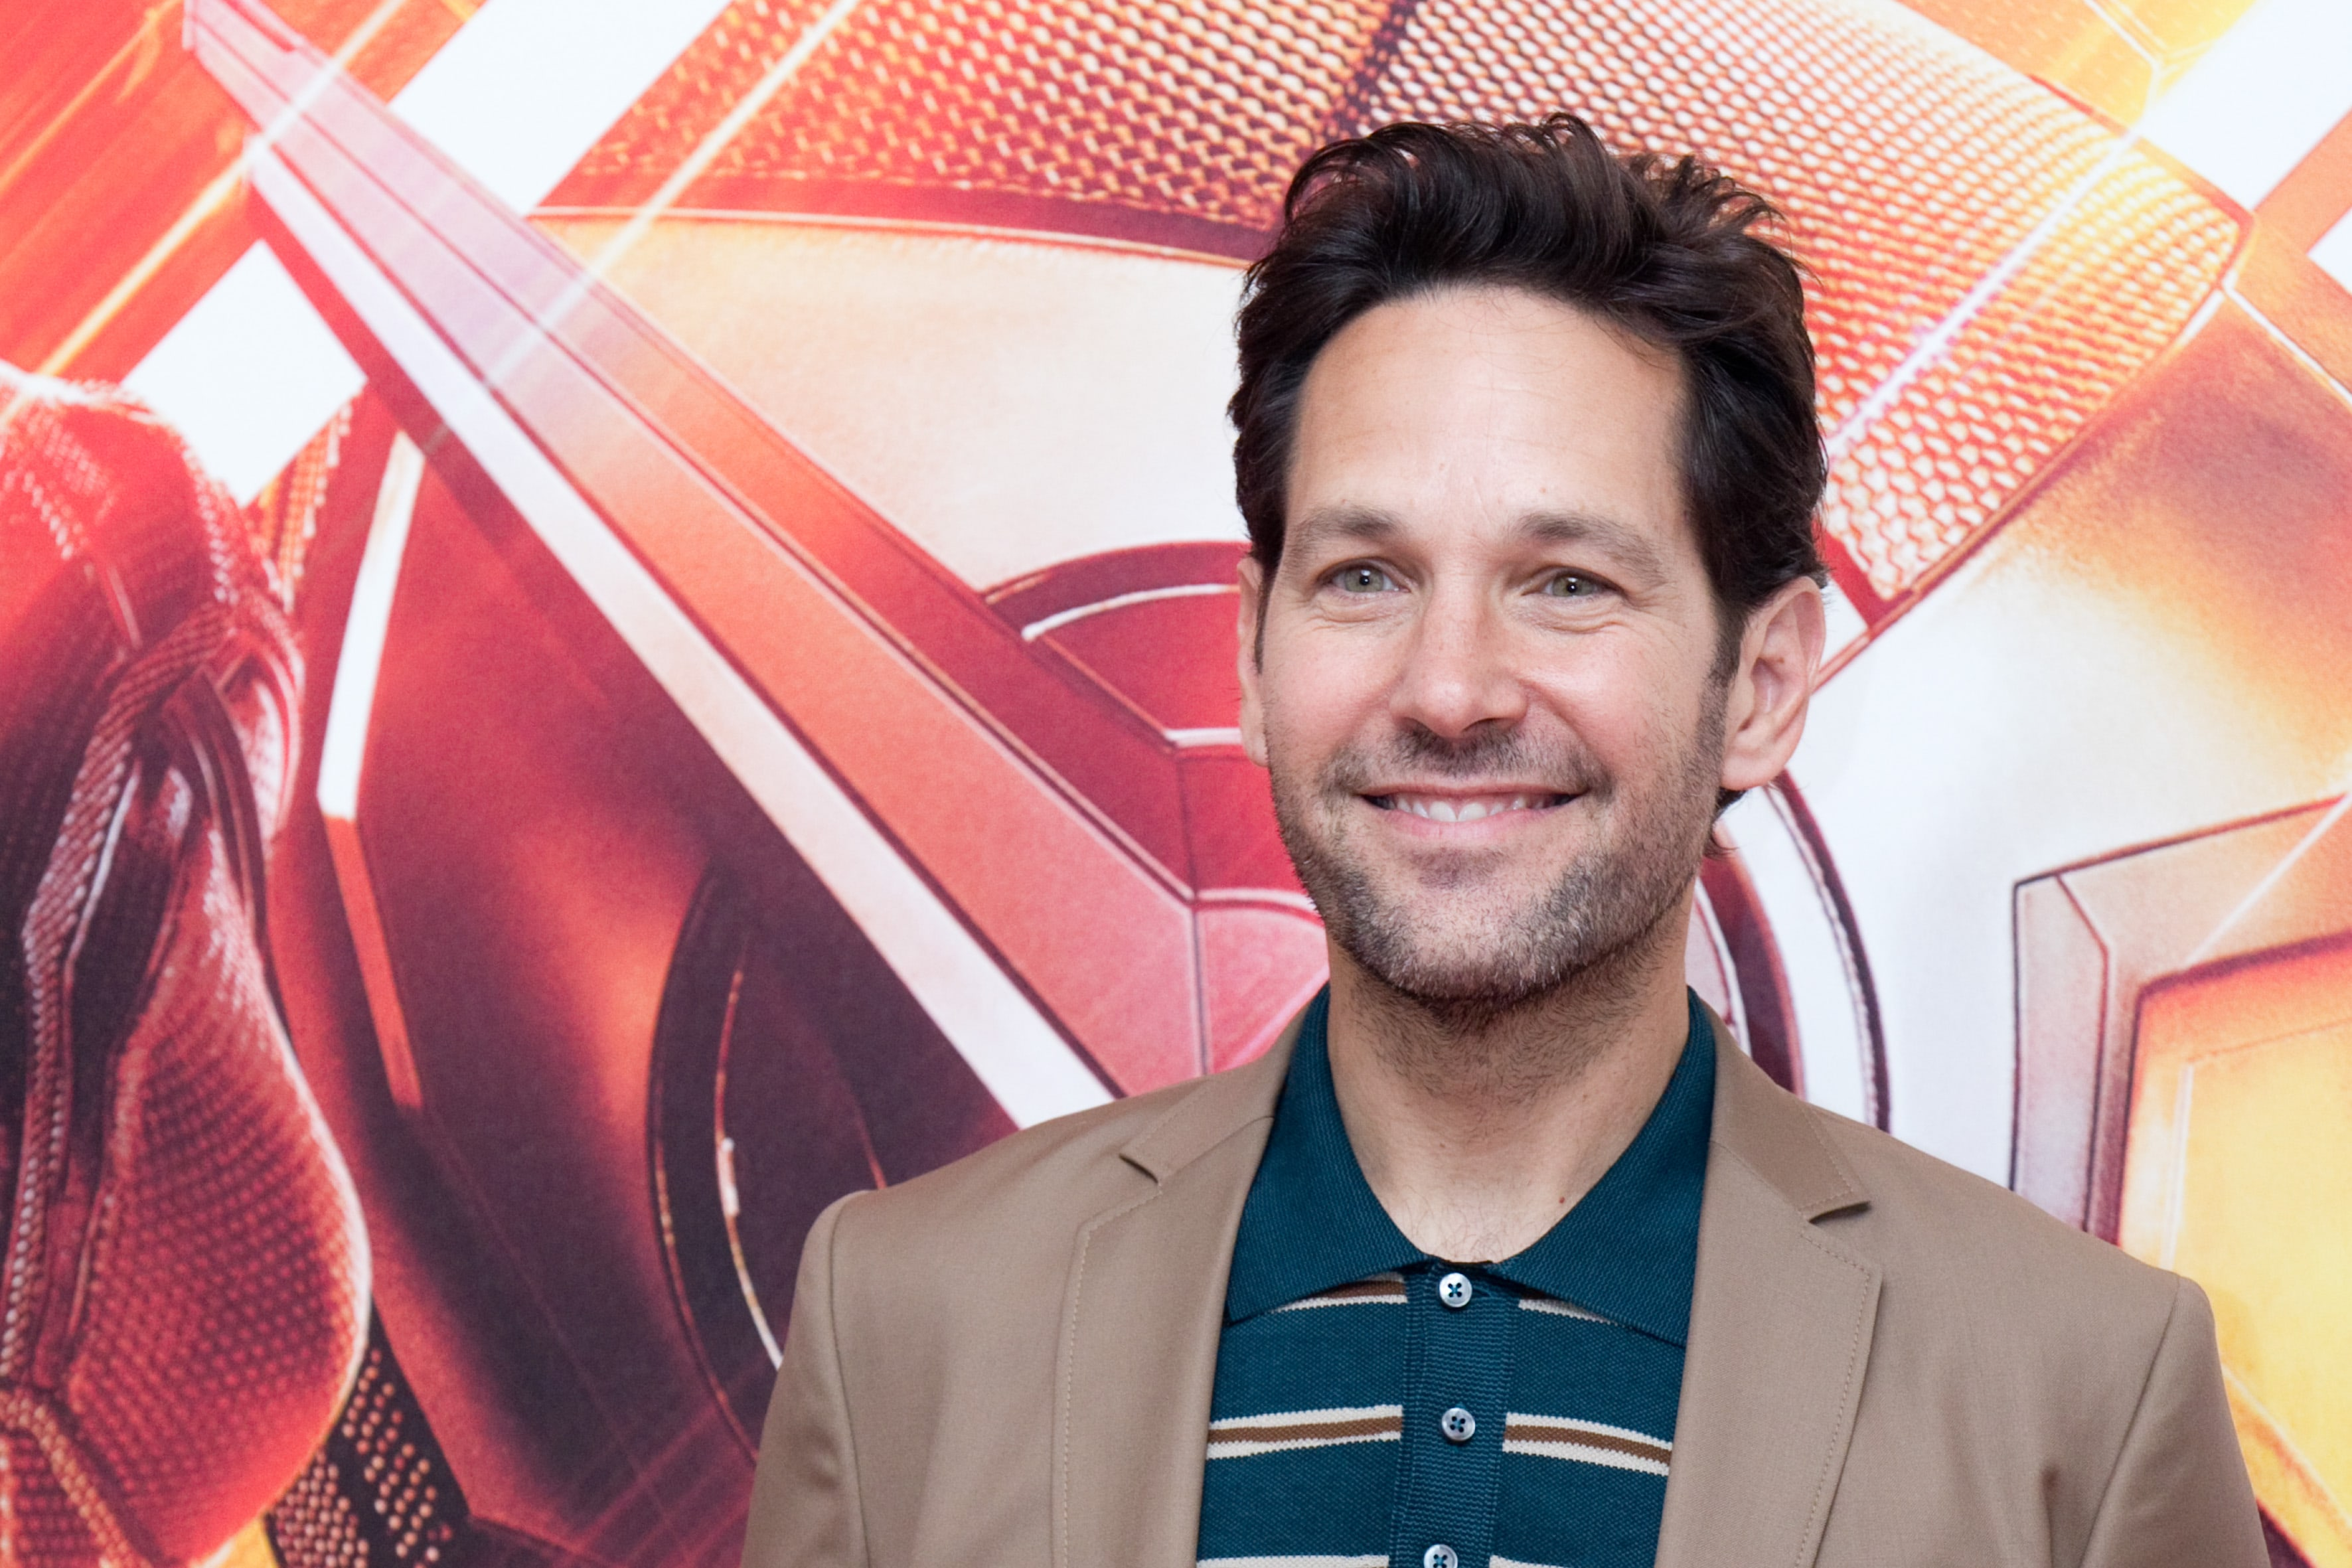 Paul Rudd is set to star in new Netflix comedy series. (Photo: WENN)